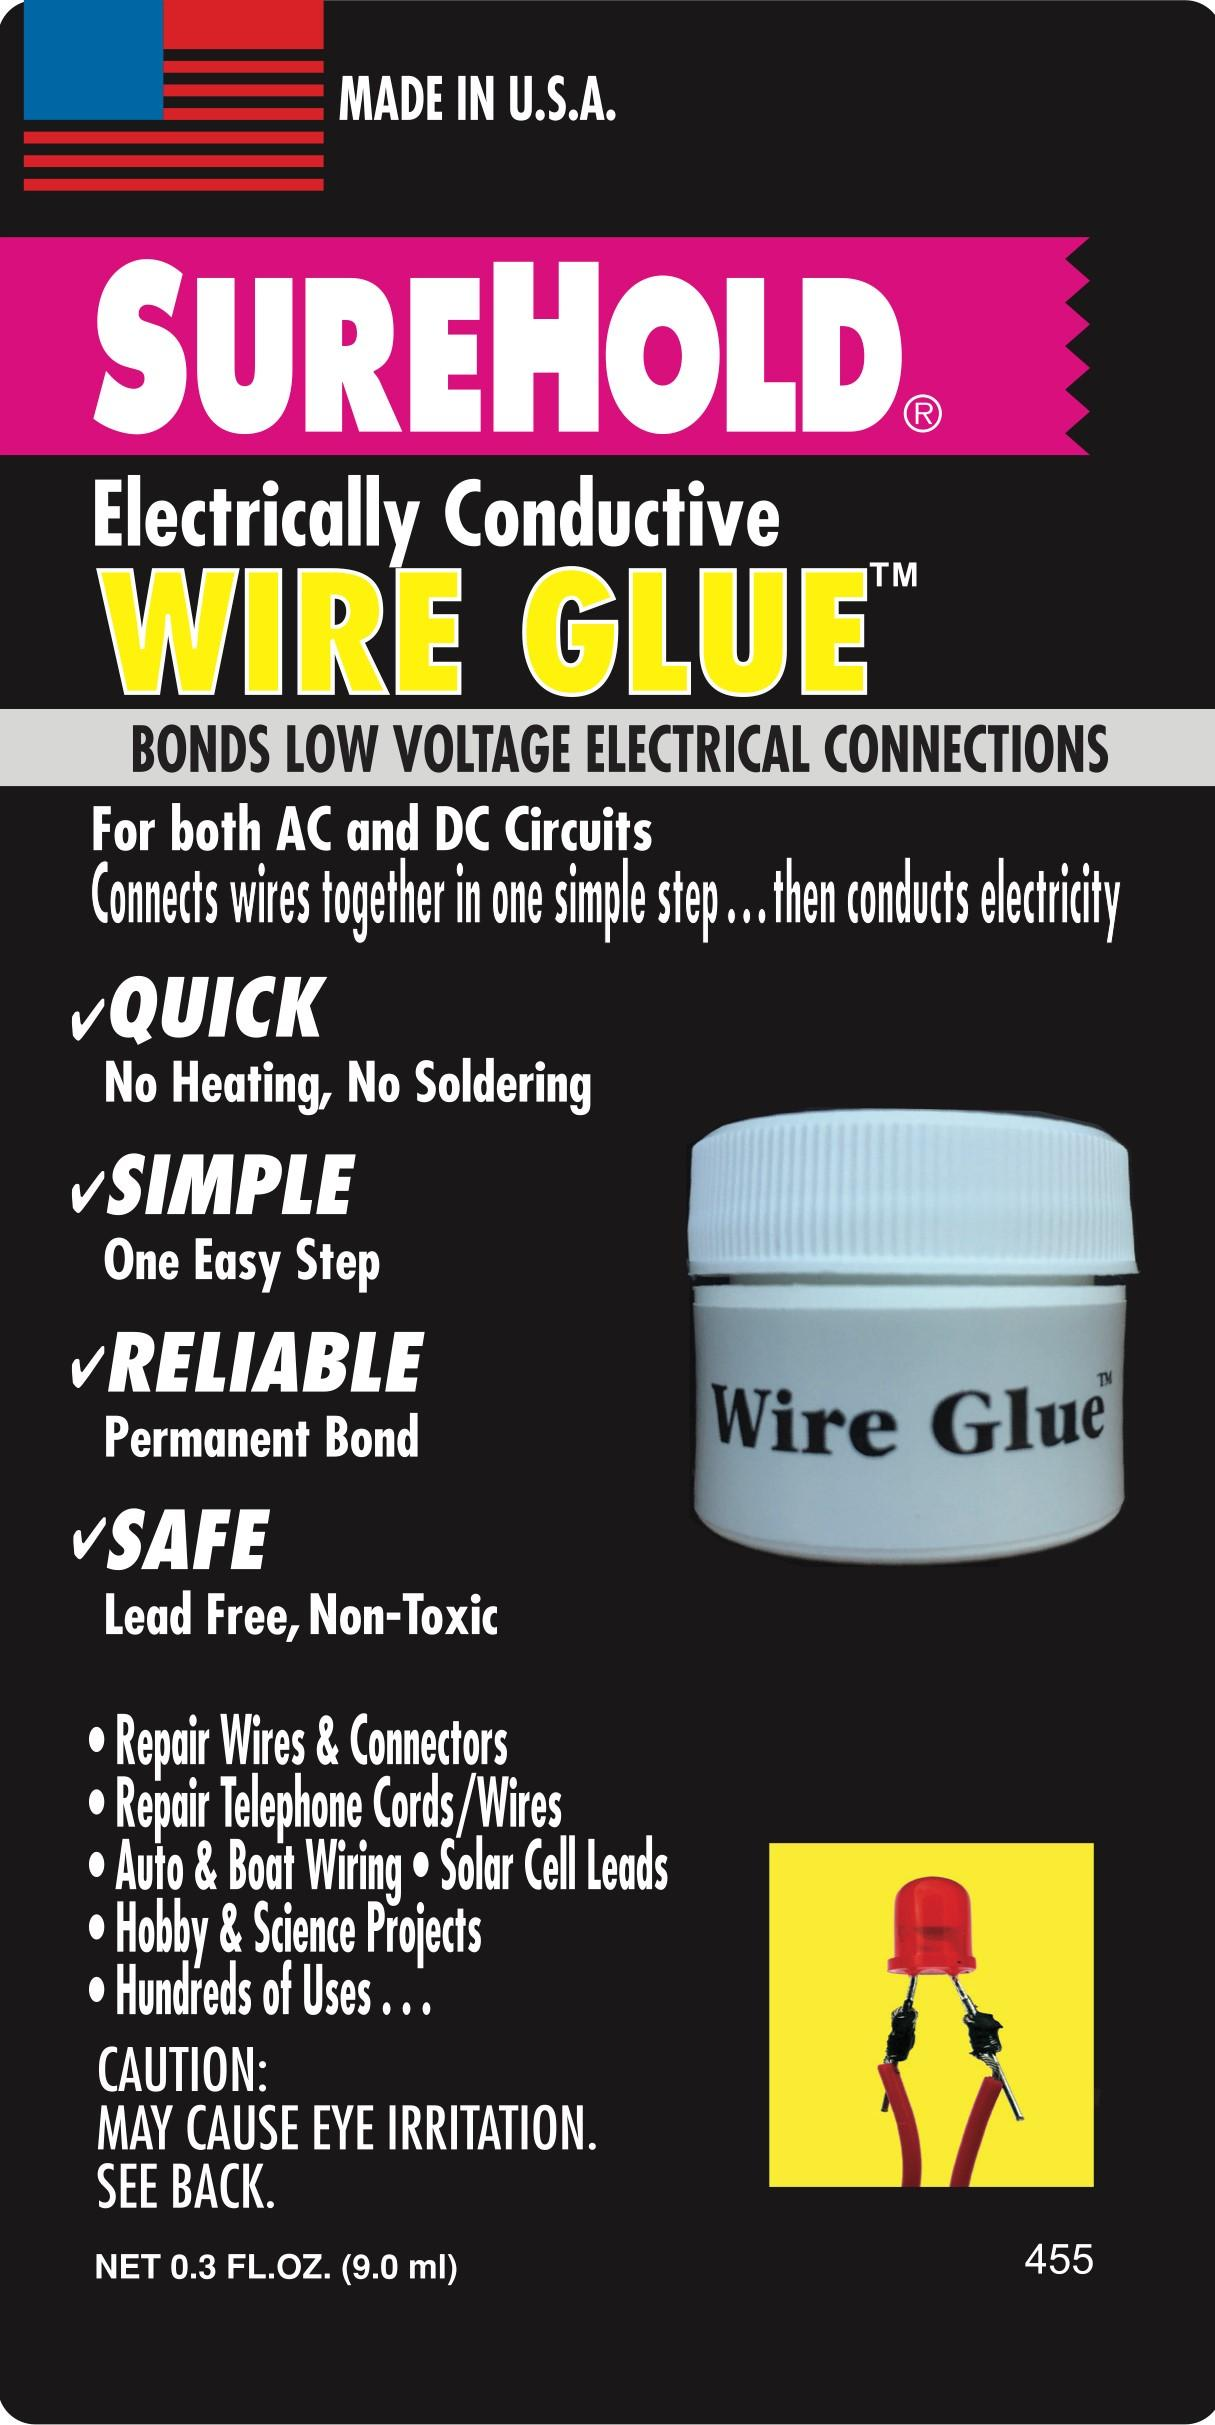 Surehold Adhesives For Every Application Electrical Circuit Science Project Wire Glue Is An Electrically Conductive Water Based Adhesive Use As A Replacement Soldering In All Types Of Low Voltage Current